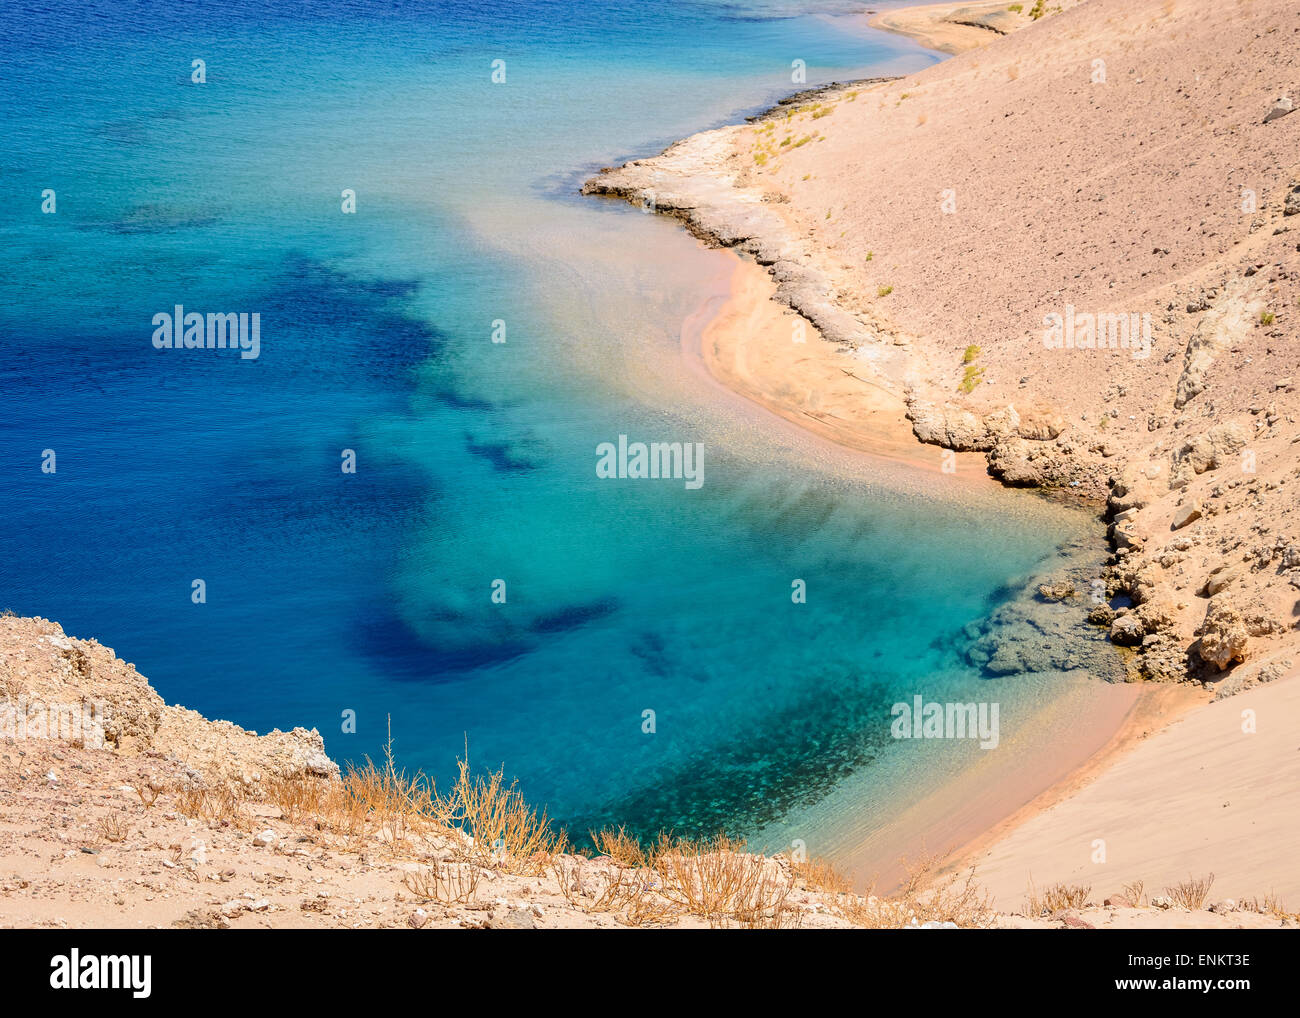 In the picture Ras Mohammed a beautiful turquoise lagoon with rocky beaches located in Egypt in the Red Sea - Stock Image